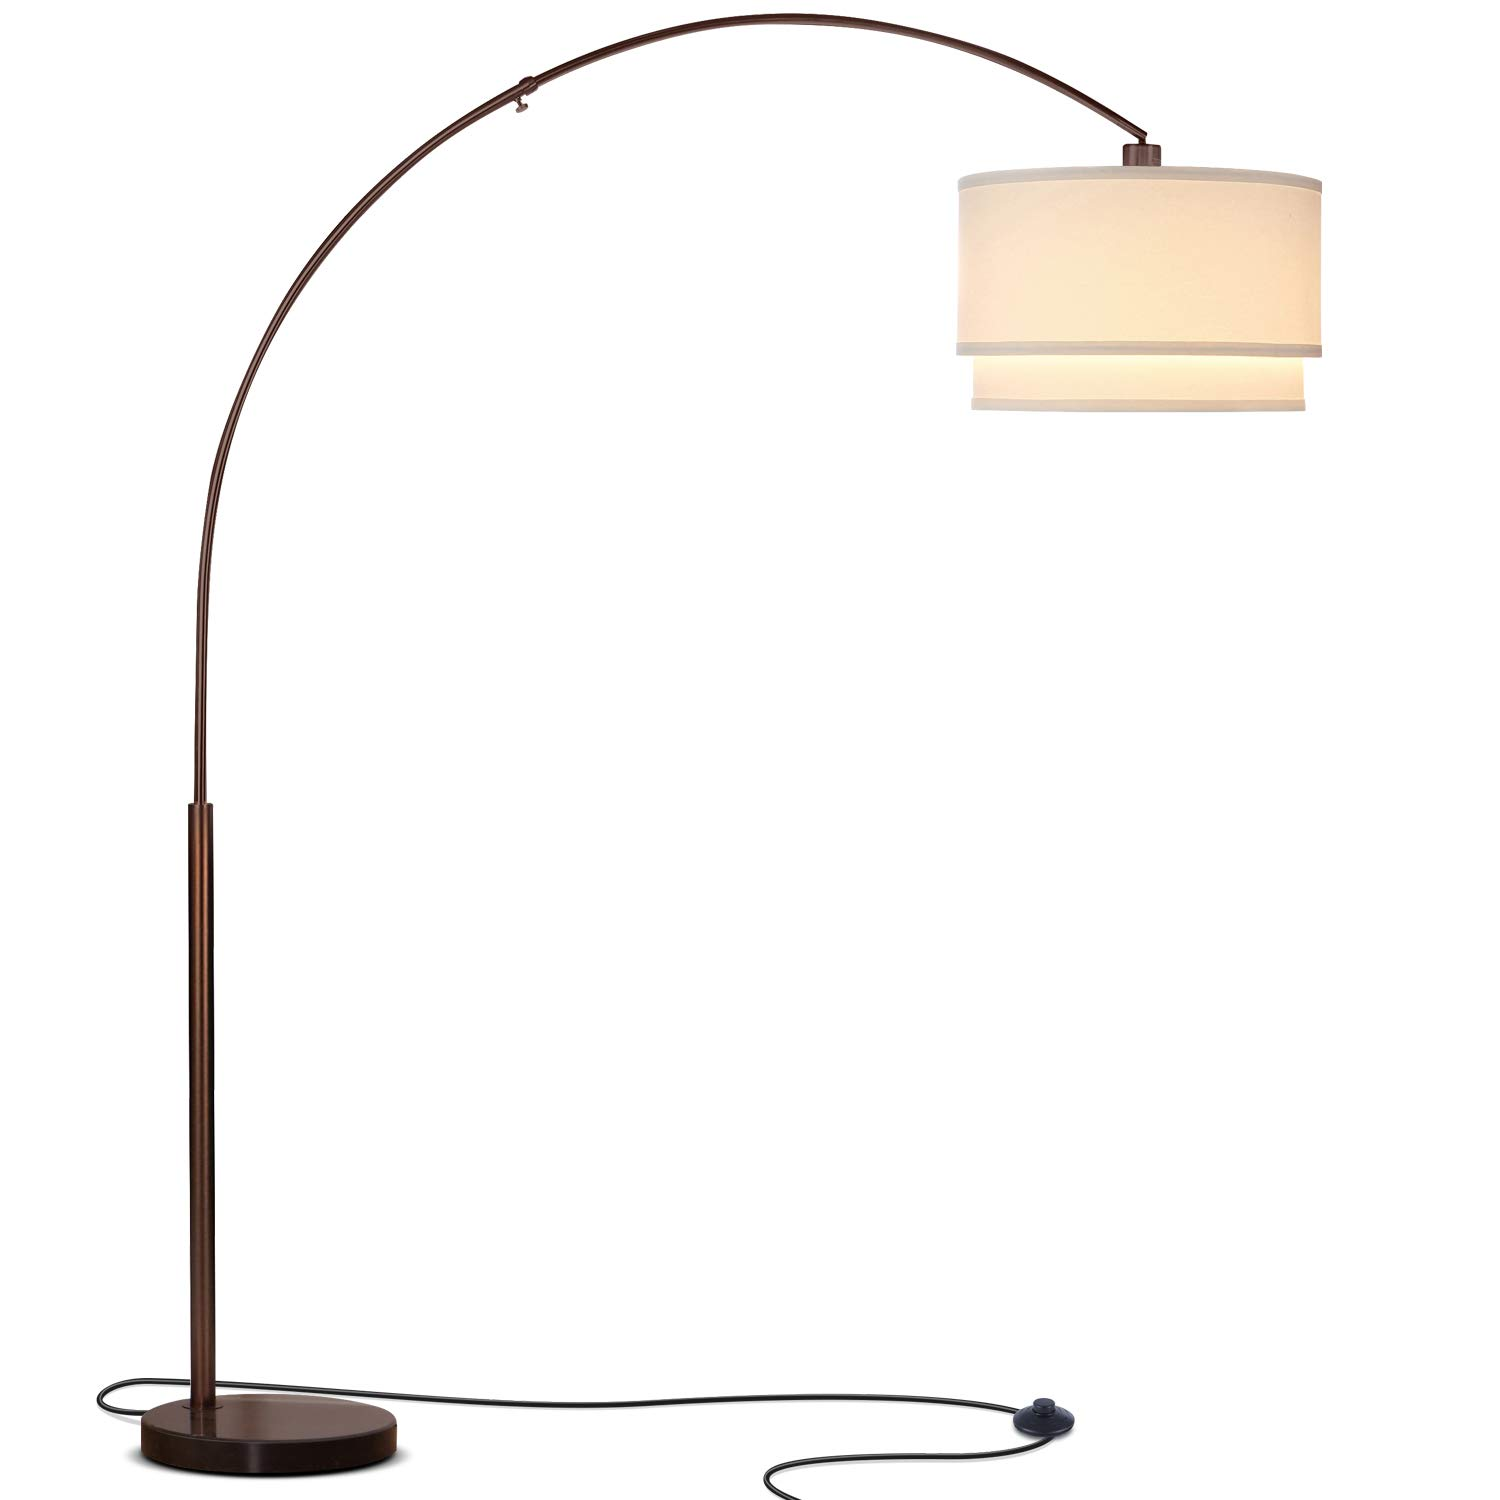 Brightech Mason LED Arc Floor Lamp with Marble Base - Living Room Pole Lighting - Modern, Tall Standing Hanging Light Fits Behind The Couch Or in A Corner - Bronze